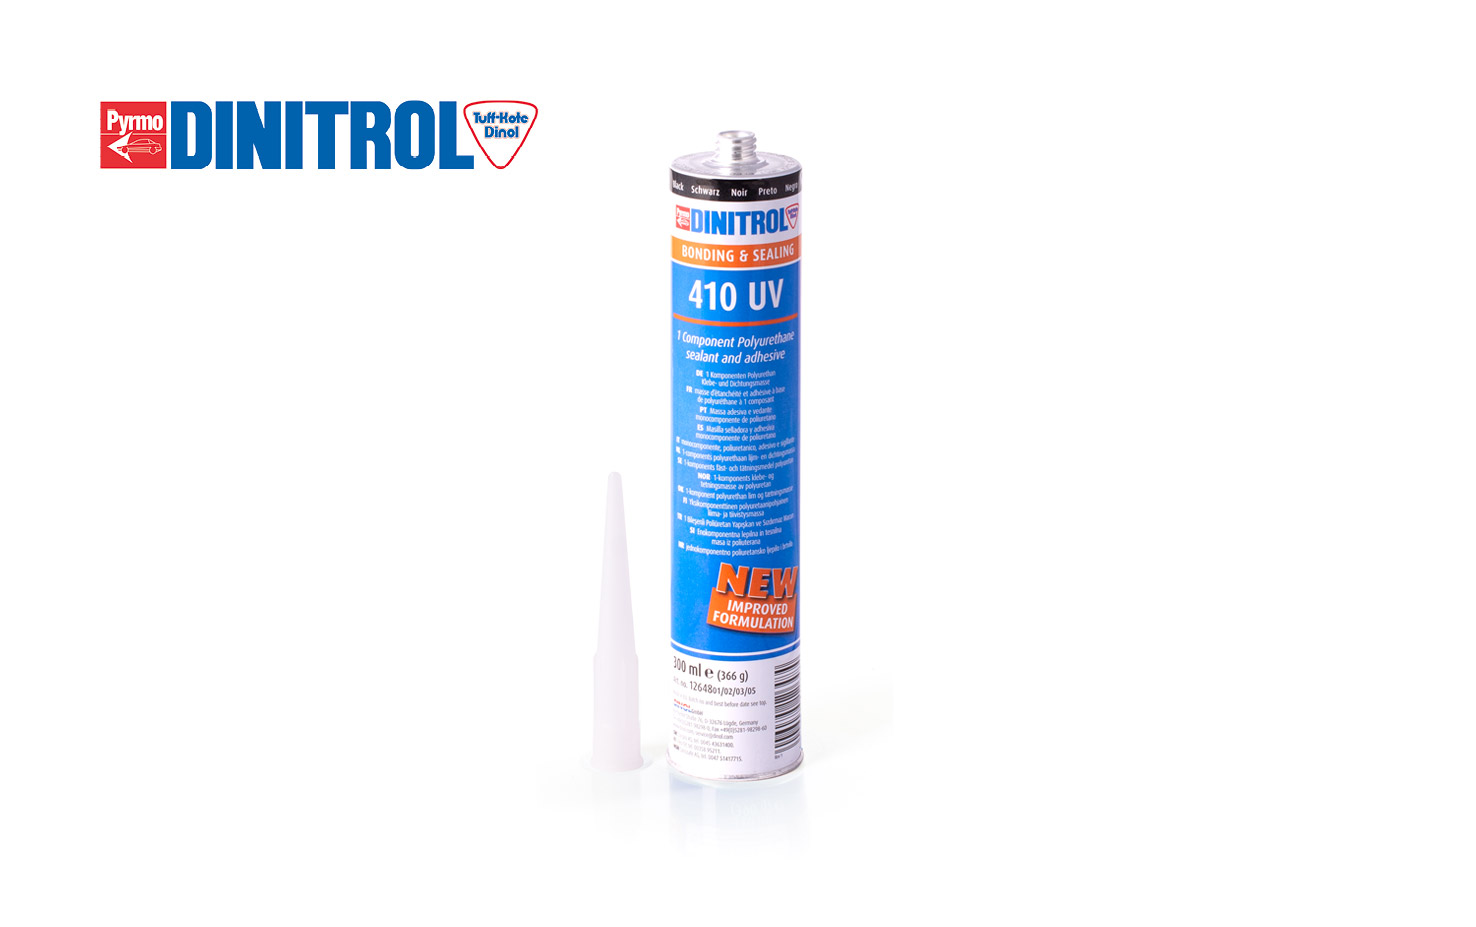 DINITROL 410 UV polyurethane adhesive Corrosion Protection Rust Treatment Windscreen Replacement Body Repair Bonding Sealing Products UK black